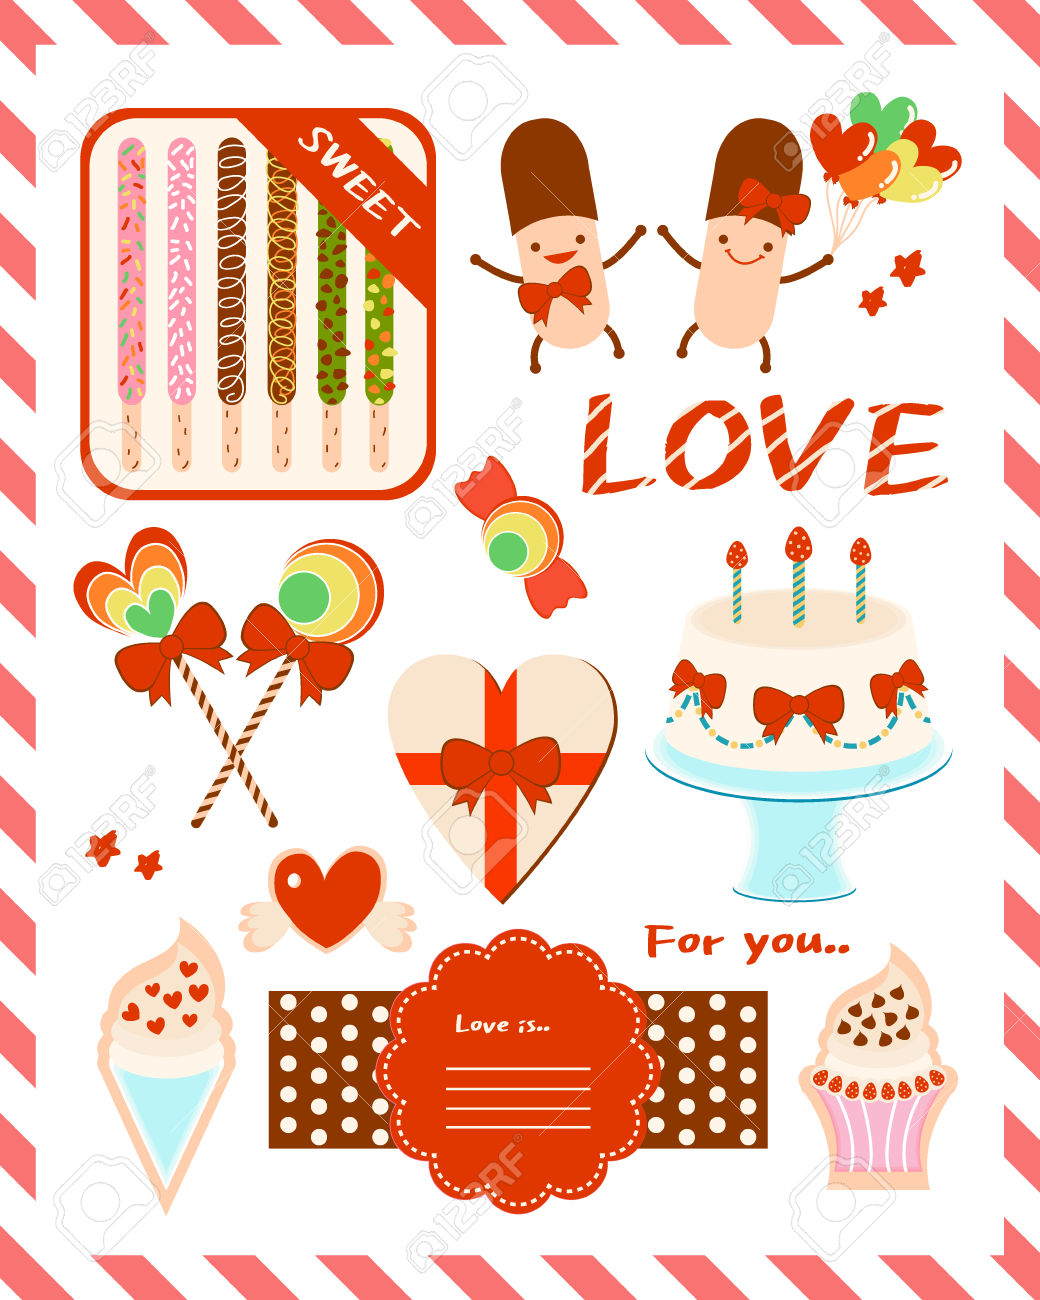 Pepero Day Design Source 1 Royalty Free Cliparts, Vectors, And.